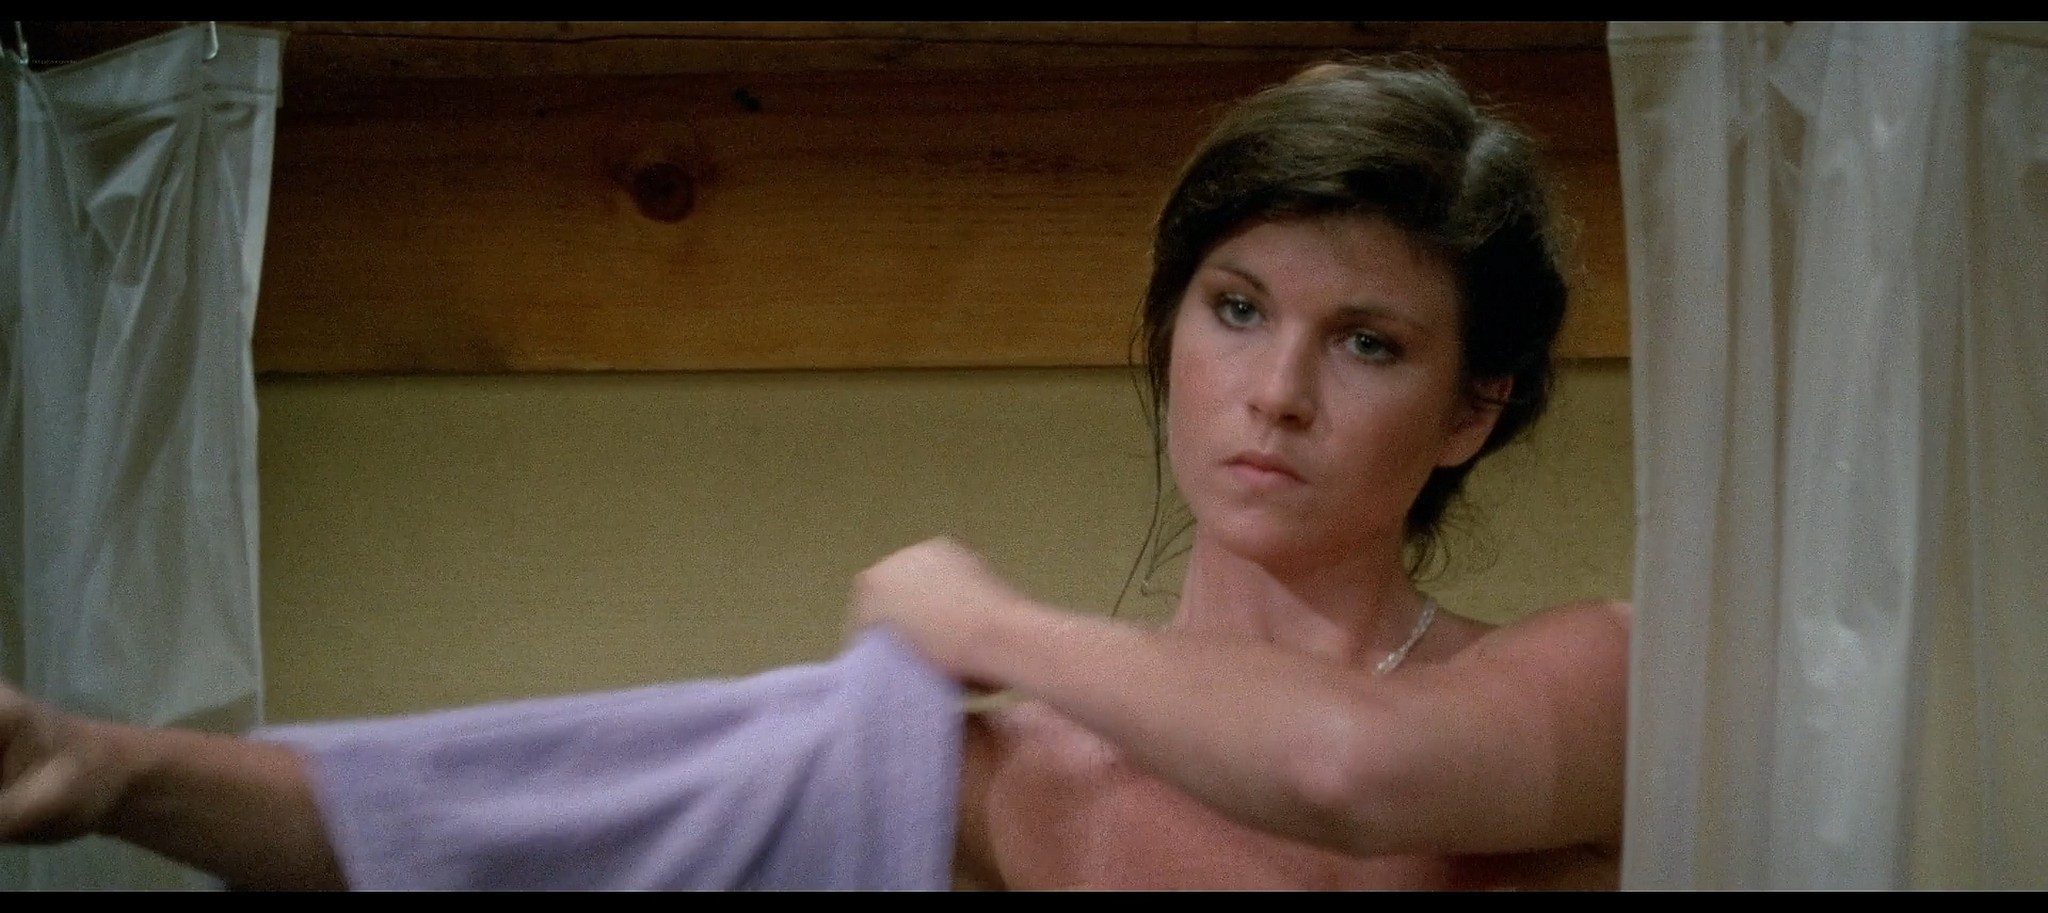 Tracie Savage nude in the shower Friday the 13th Part 3 1982 BluRay 12